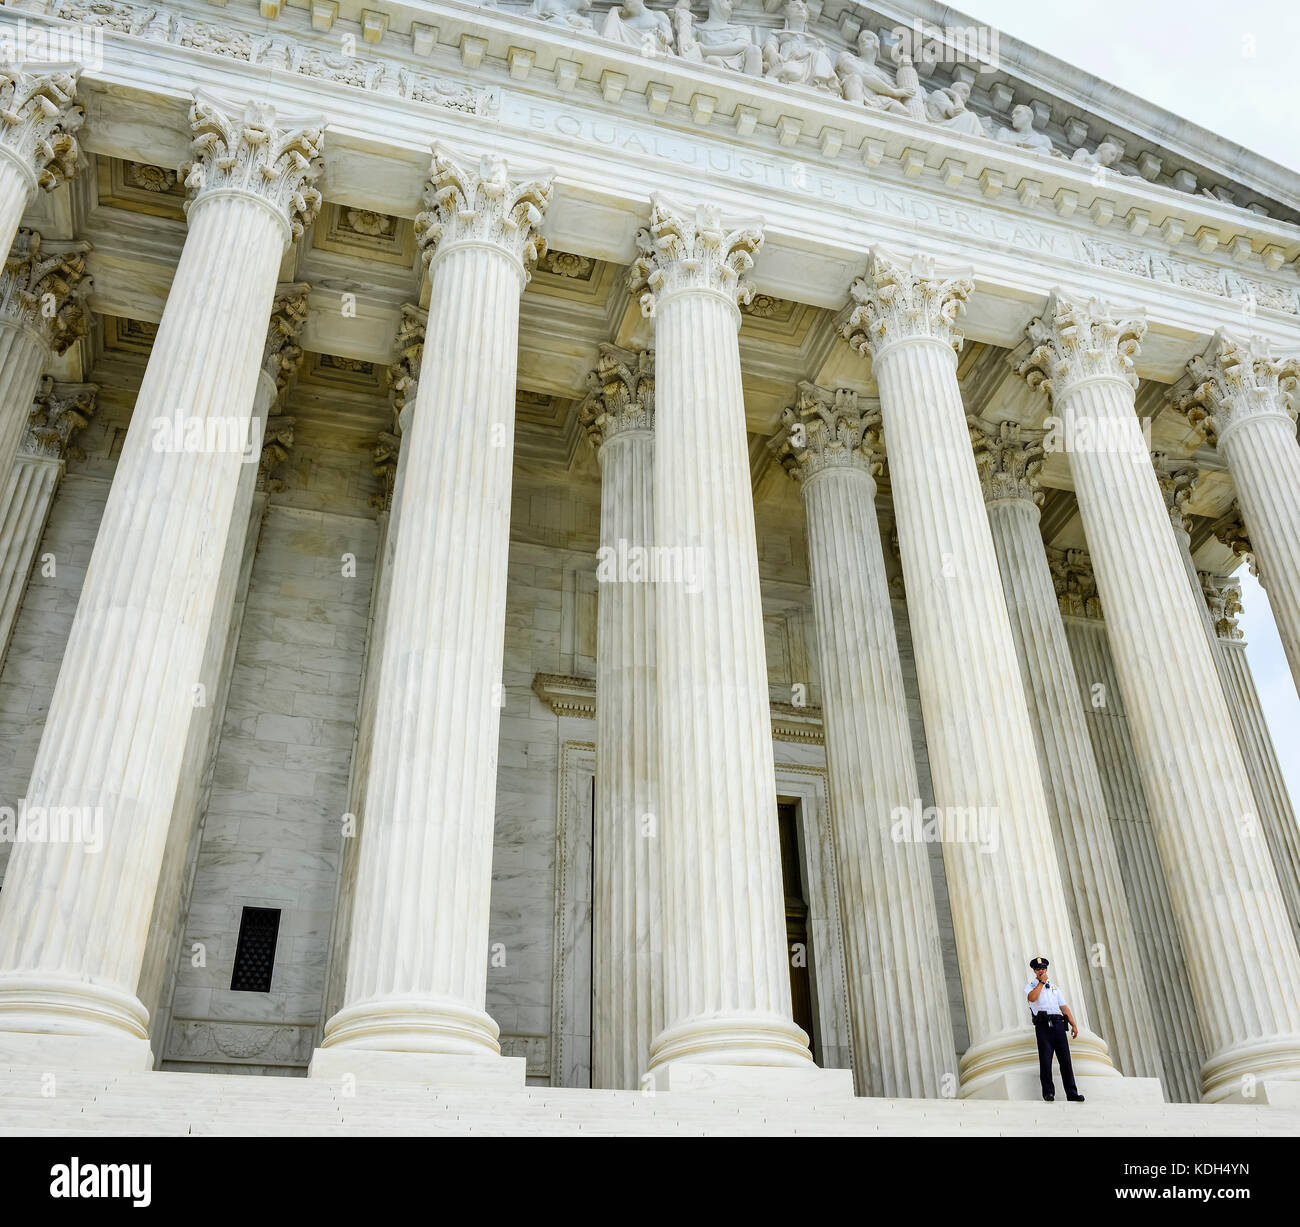 A lone security guard in front of the entrace to the majestic US Supreme Court in Washington, DC, USA - Stock Image